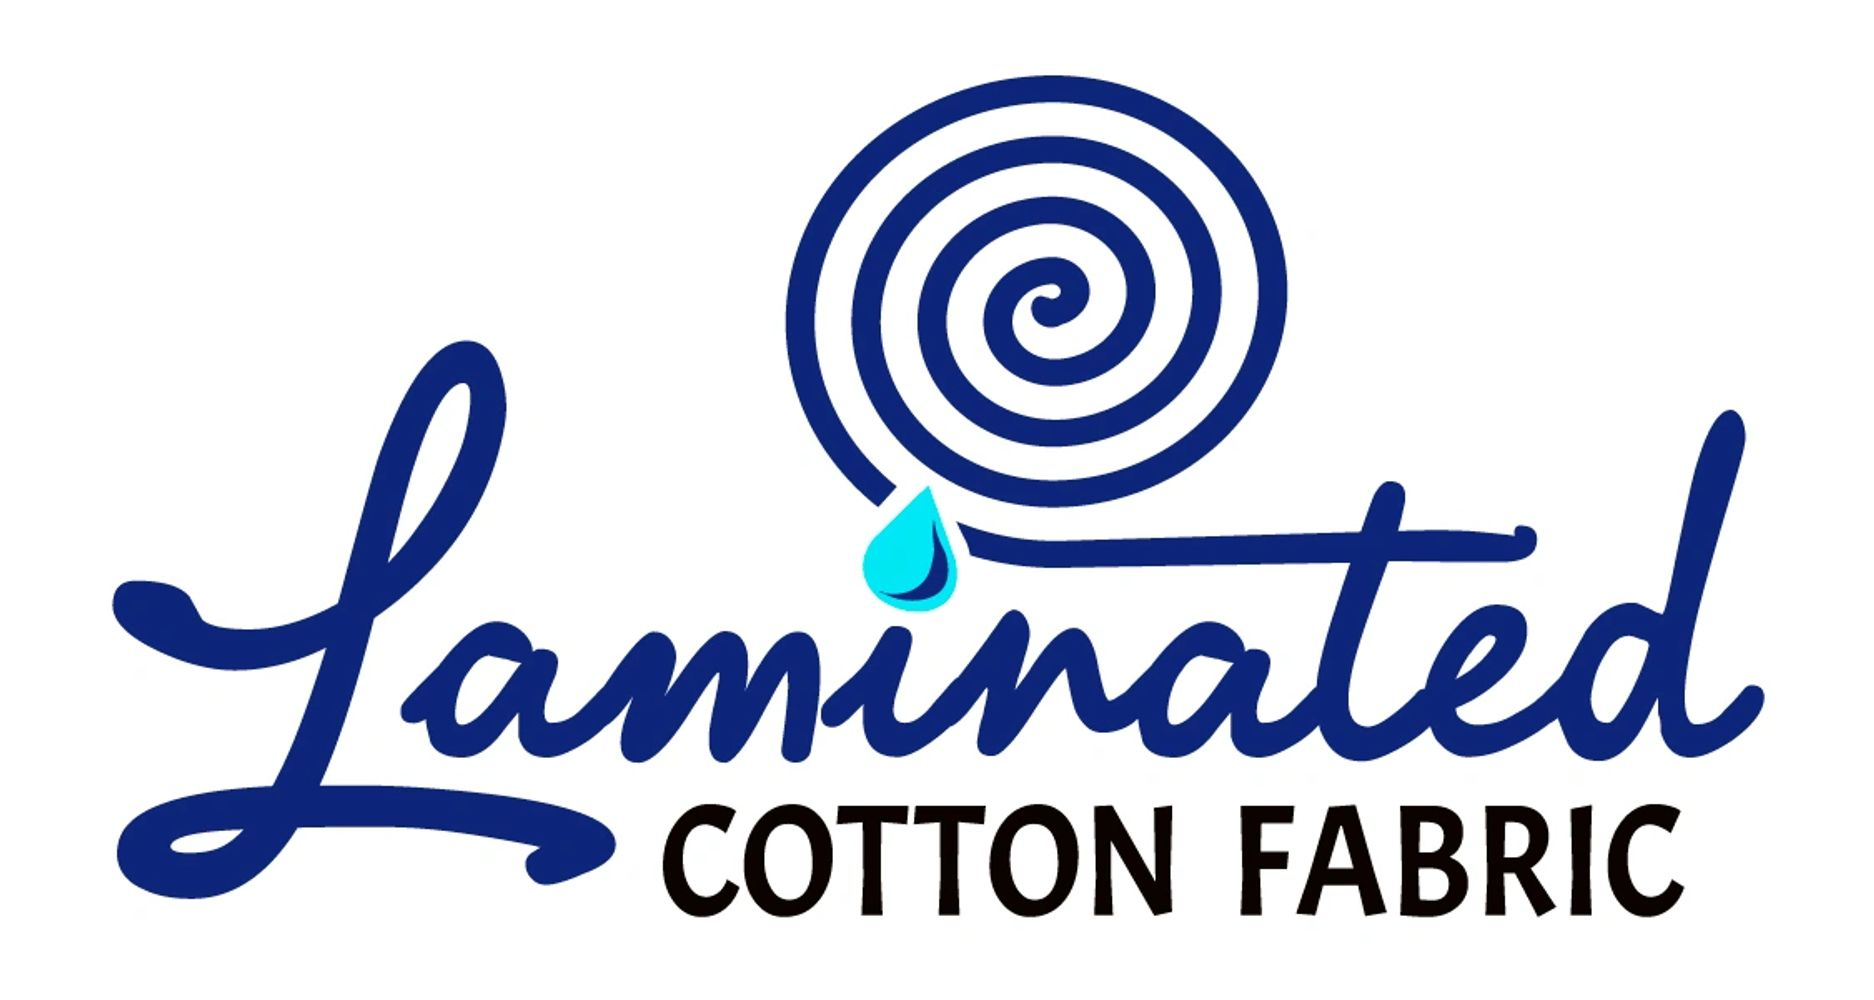 Laminated cotton fabric logo